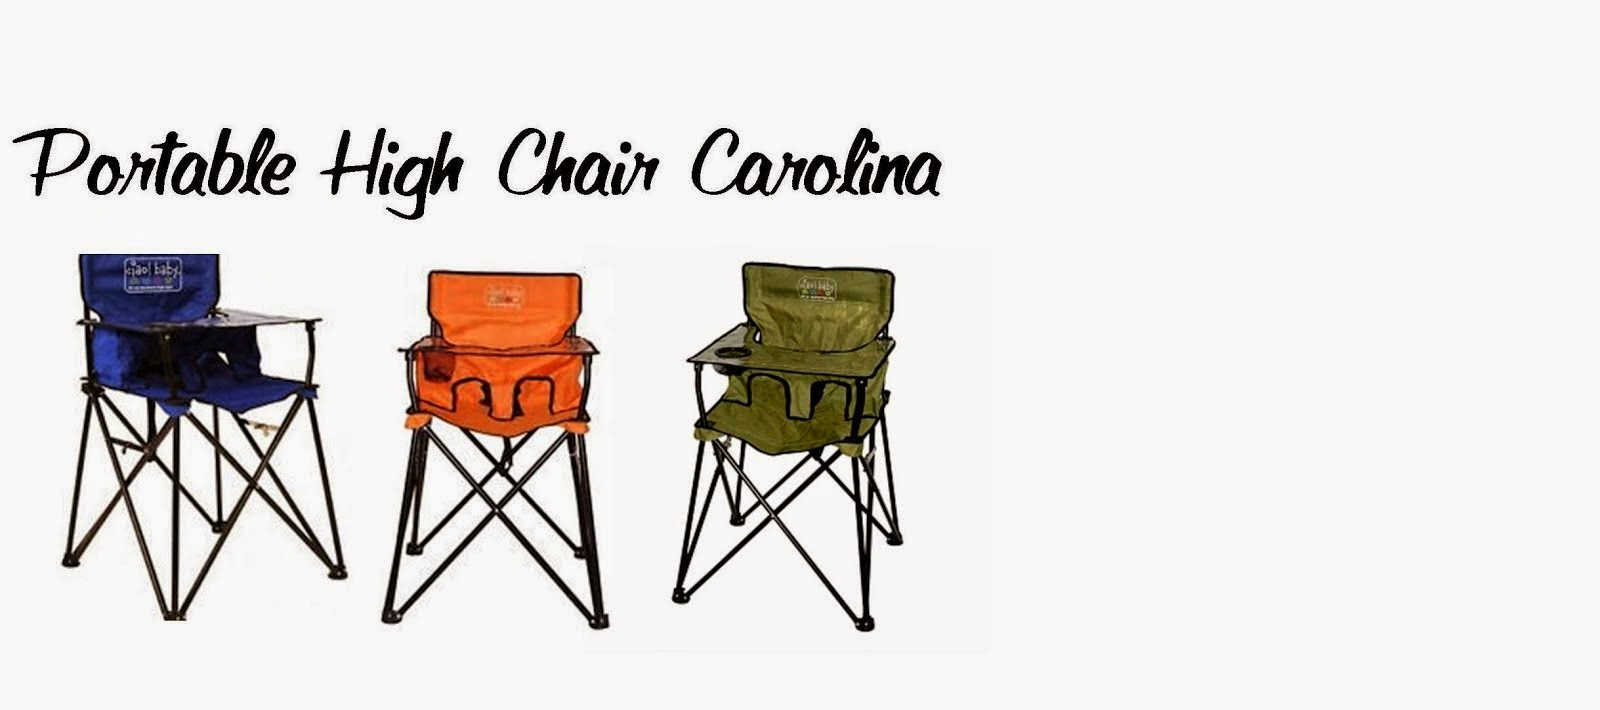 Portable High Chair Carolina